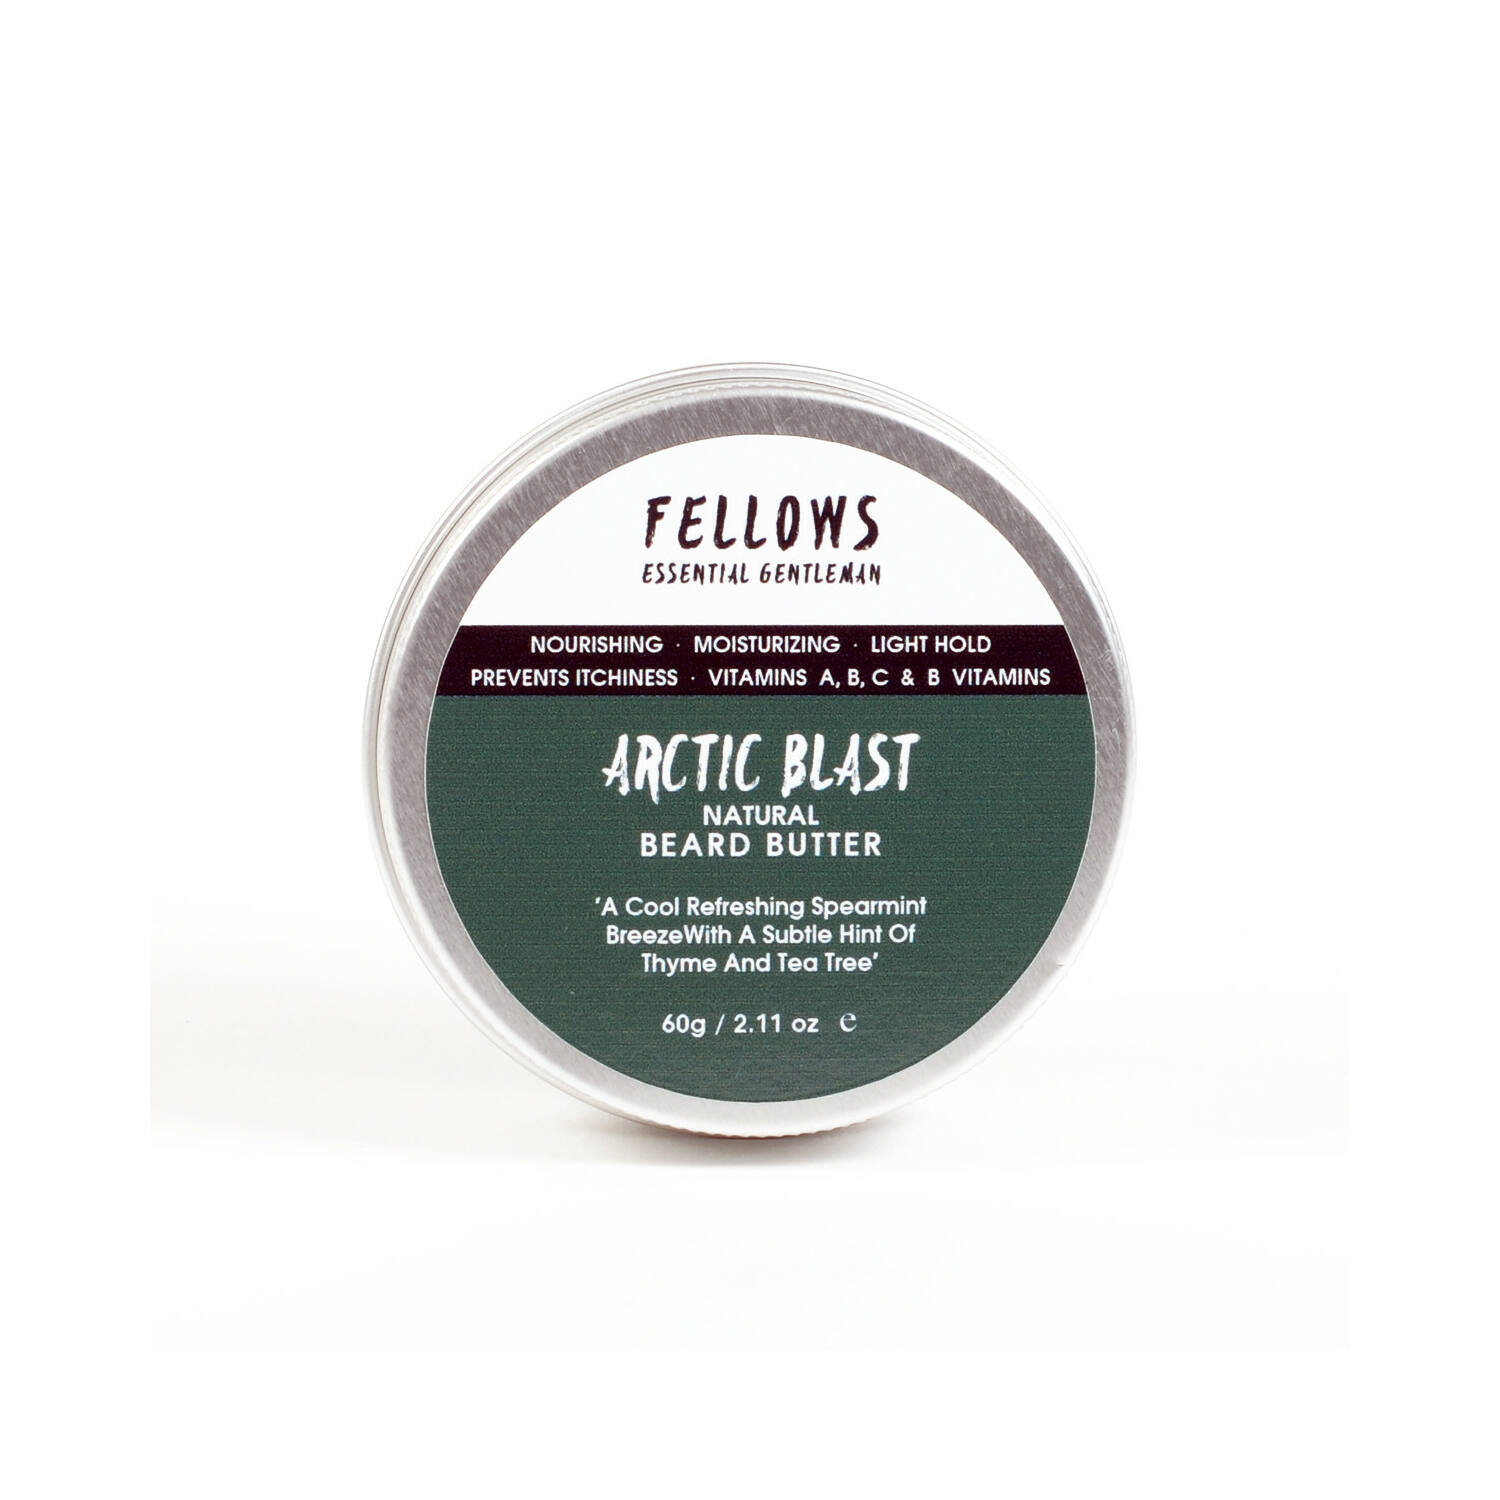 Fellows Arctic Blast szakállbalzsam 60ml